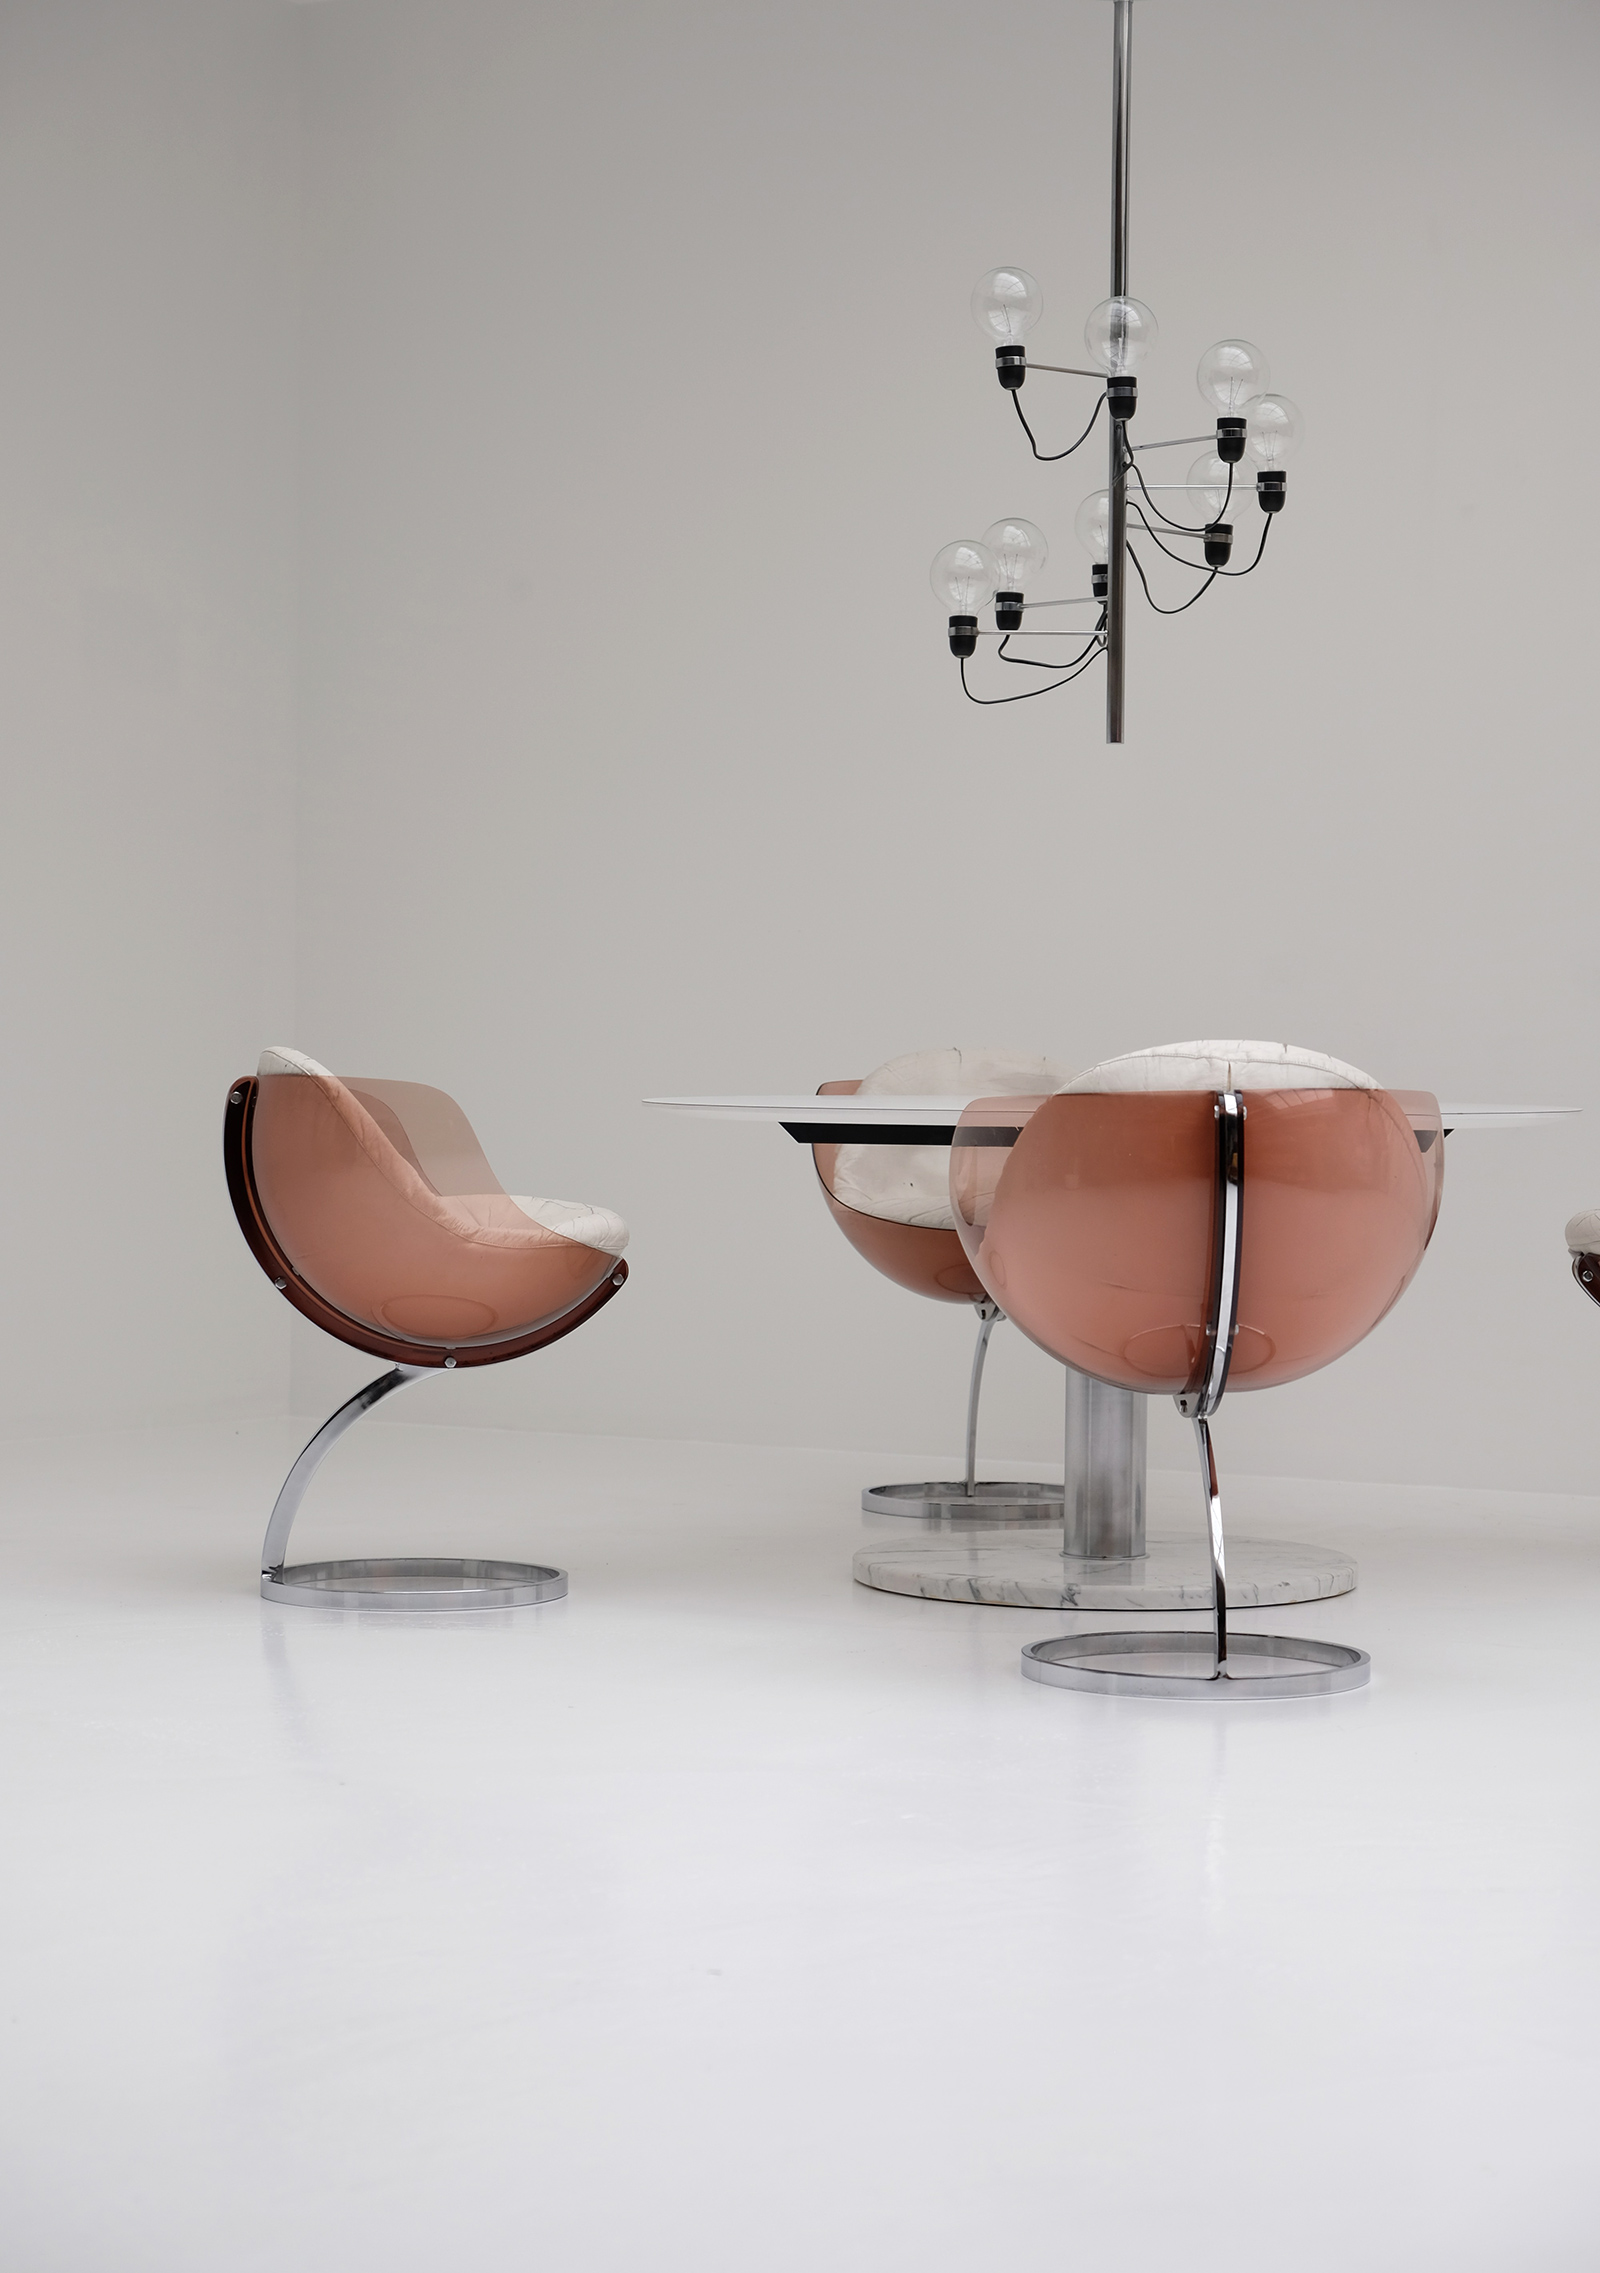 Boris Tabacoff Sphere Chairs Mobillier Modulaire Modernimage 9